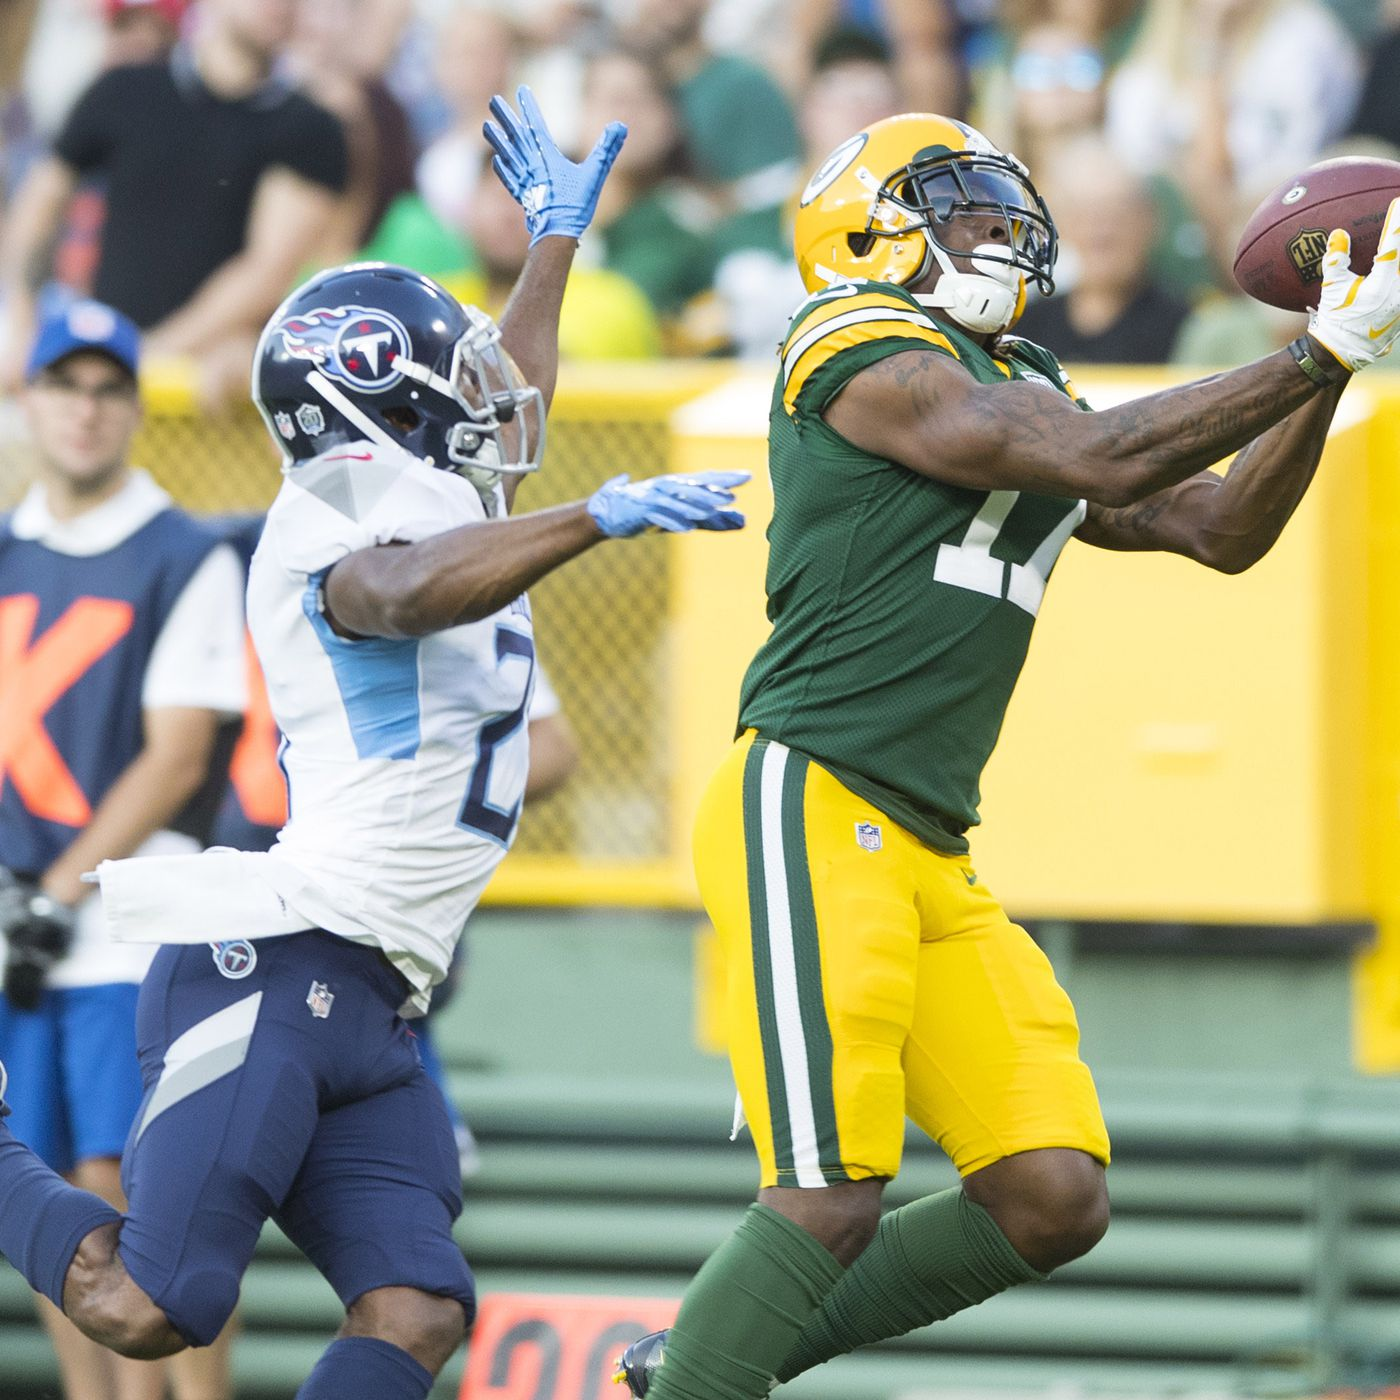 Read more about the article Titans Vs Packers NFL Week 16